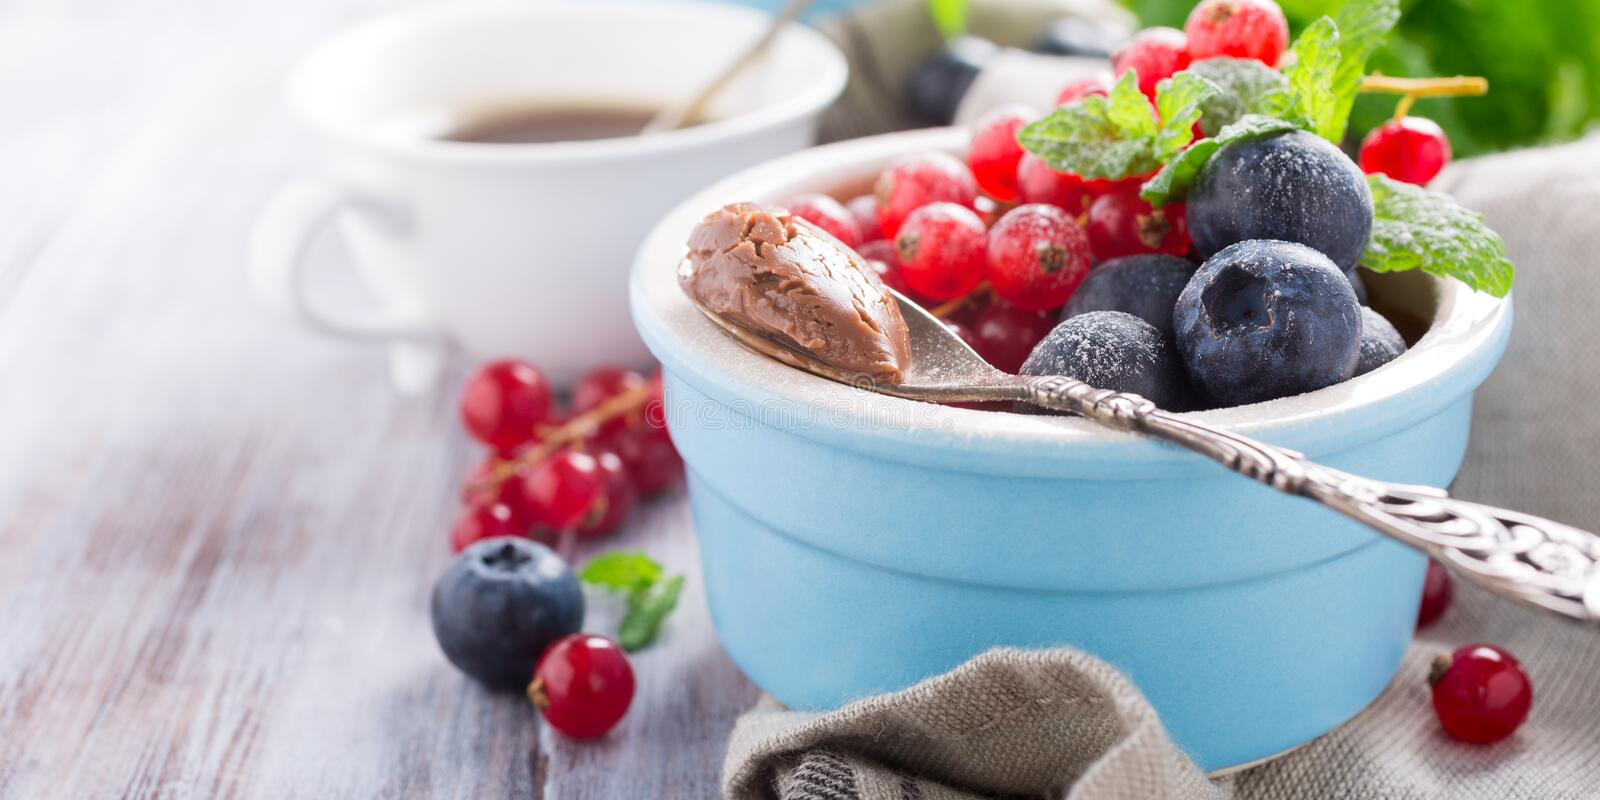 Chocolate dessert with berries. Delicious chocolate dessert with berries and mint served in ramekin. Copy space stock photo